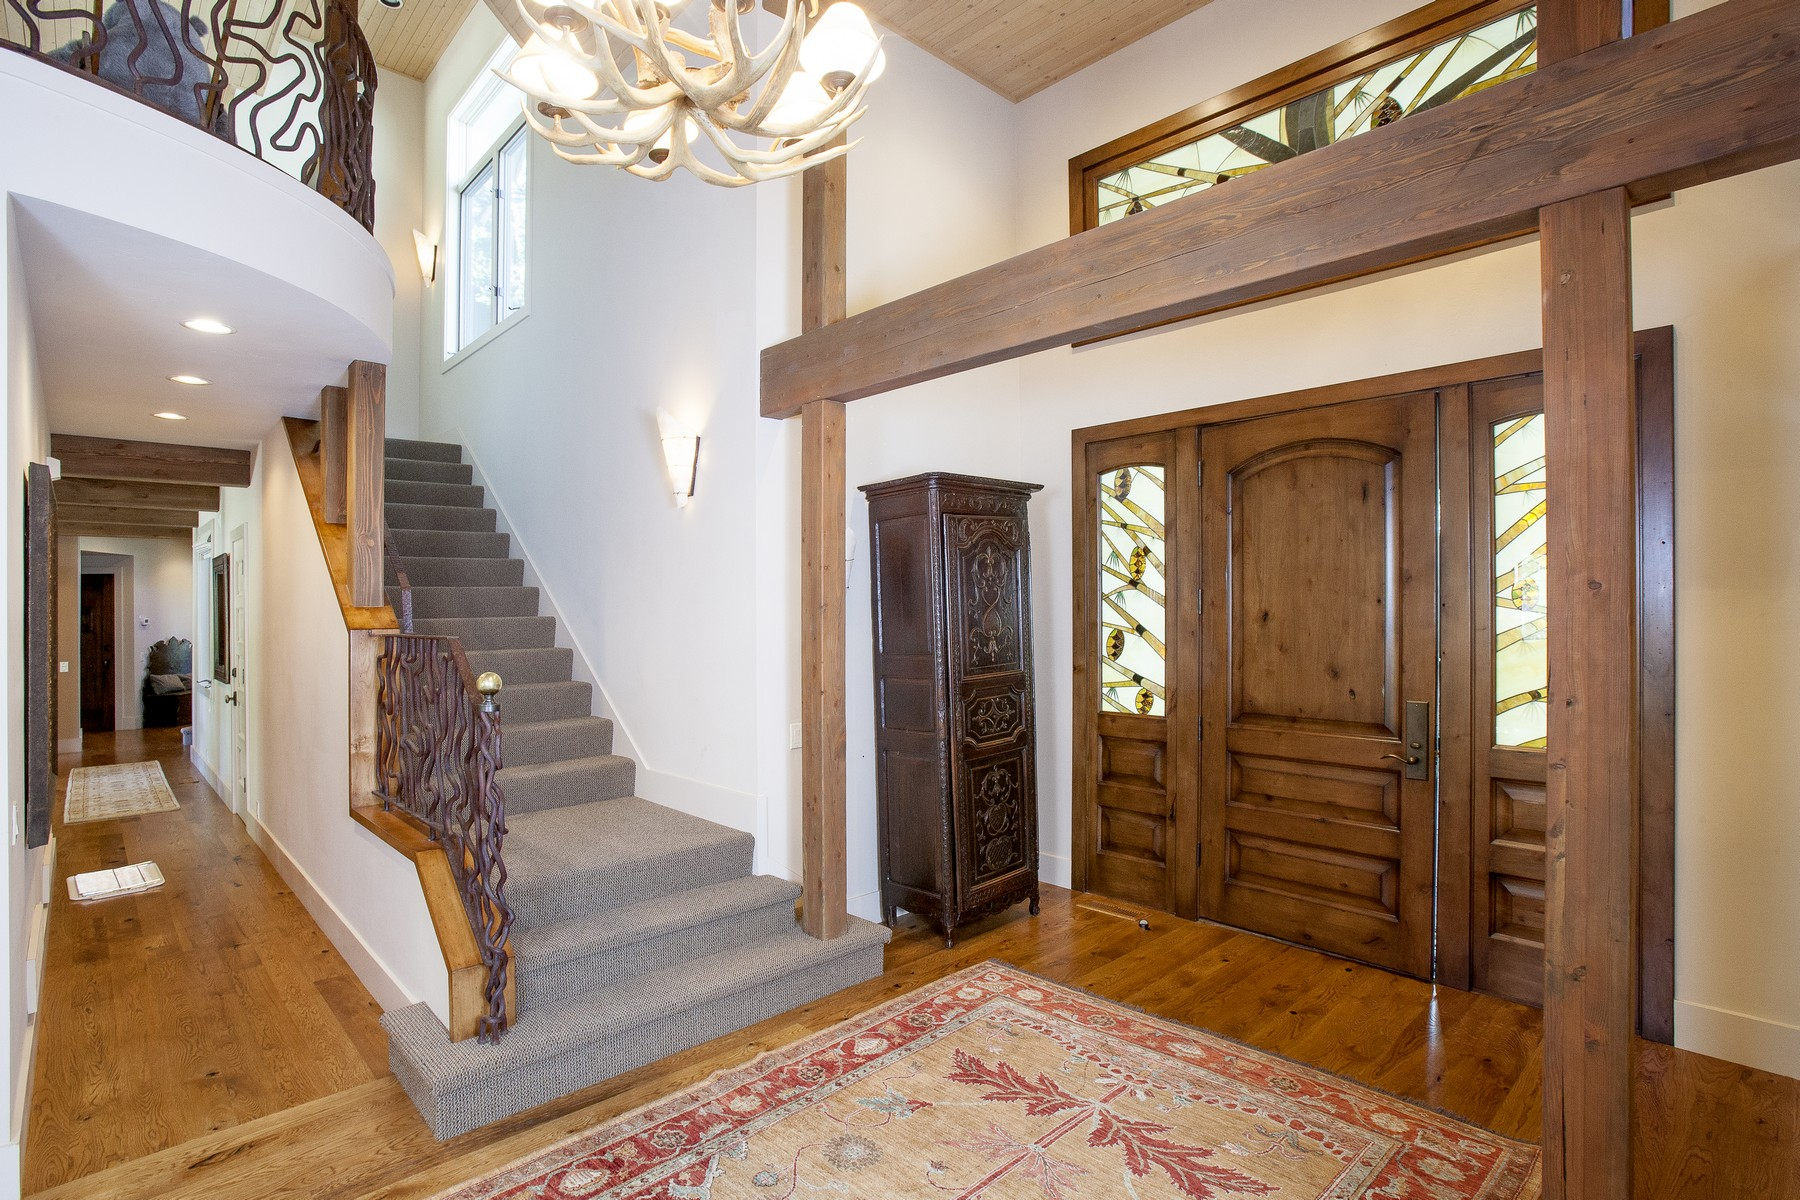 Additional photo for property listing at Spectacular Home Near the Big Wood River 33 Cliffside Dr Ketchum, Idaho 83340 États-Unis